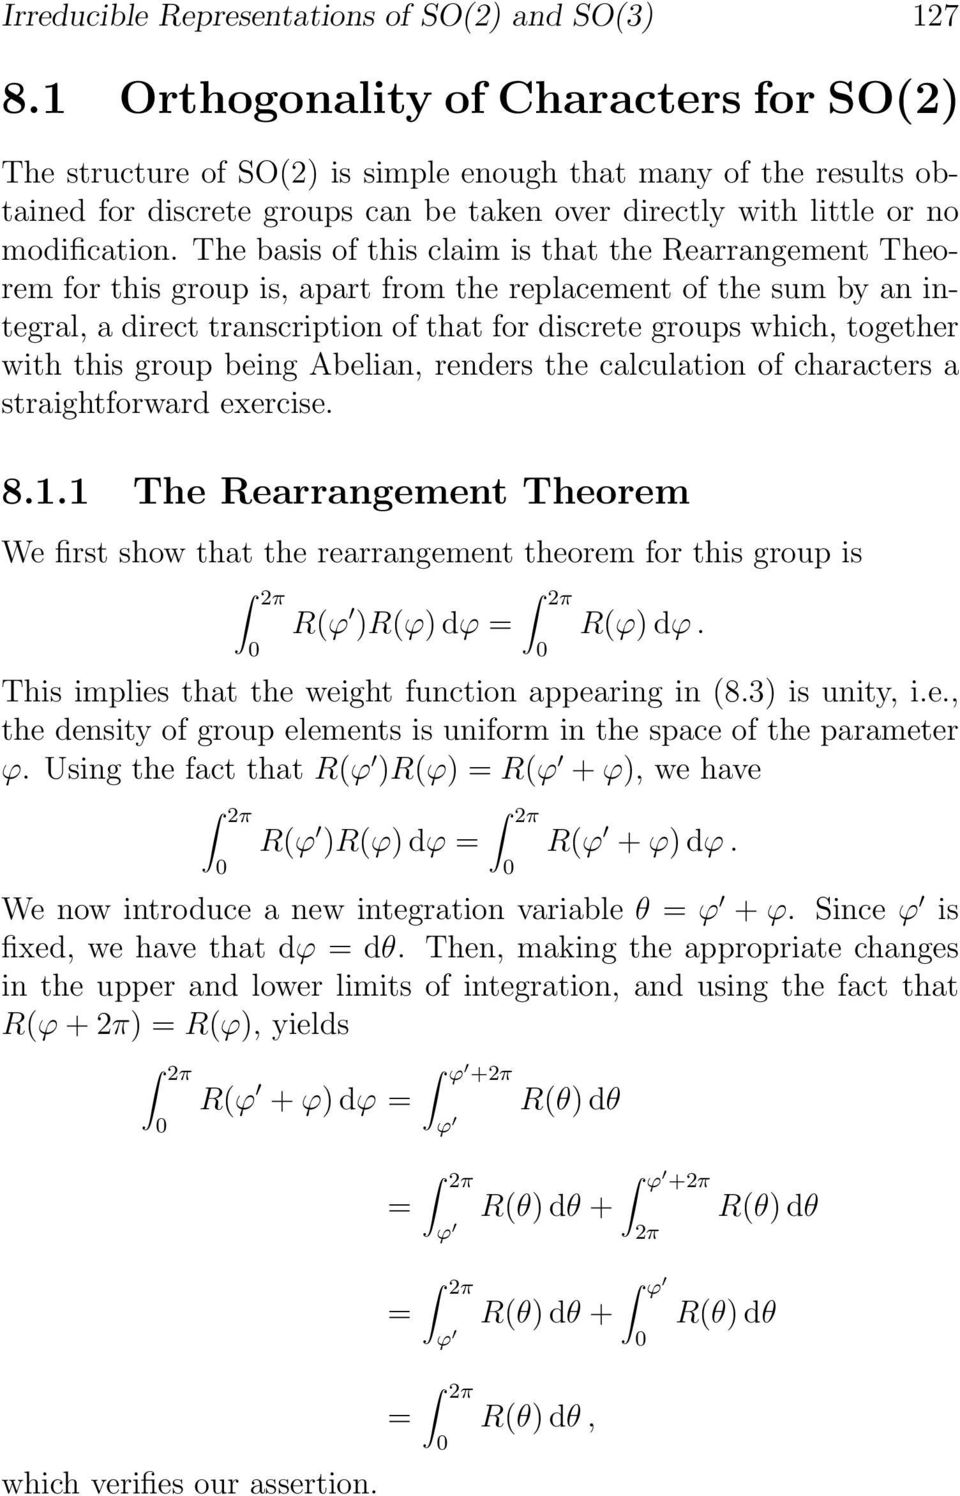 The basis of this claim is that the Rearrangement Theorem for this group is, apart from the replacement of the sum by an integral, a direct transcription of that for discrete groups which, together